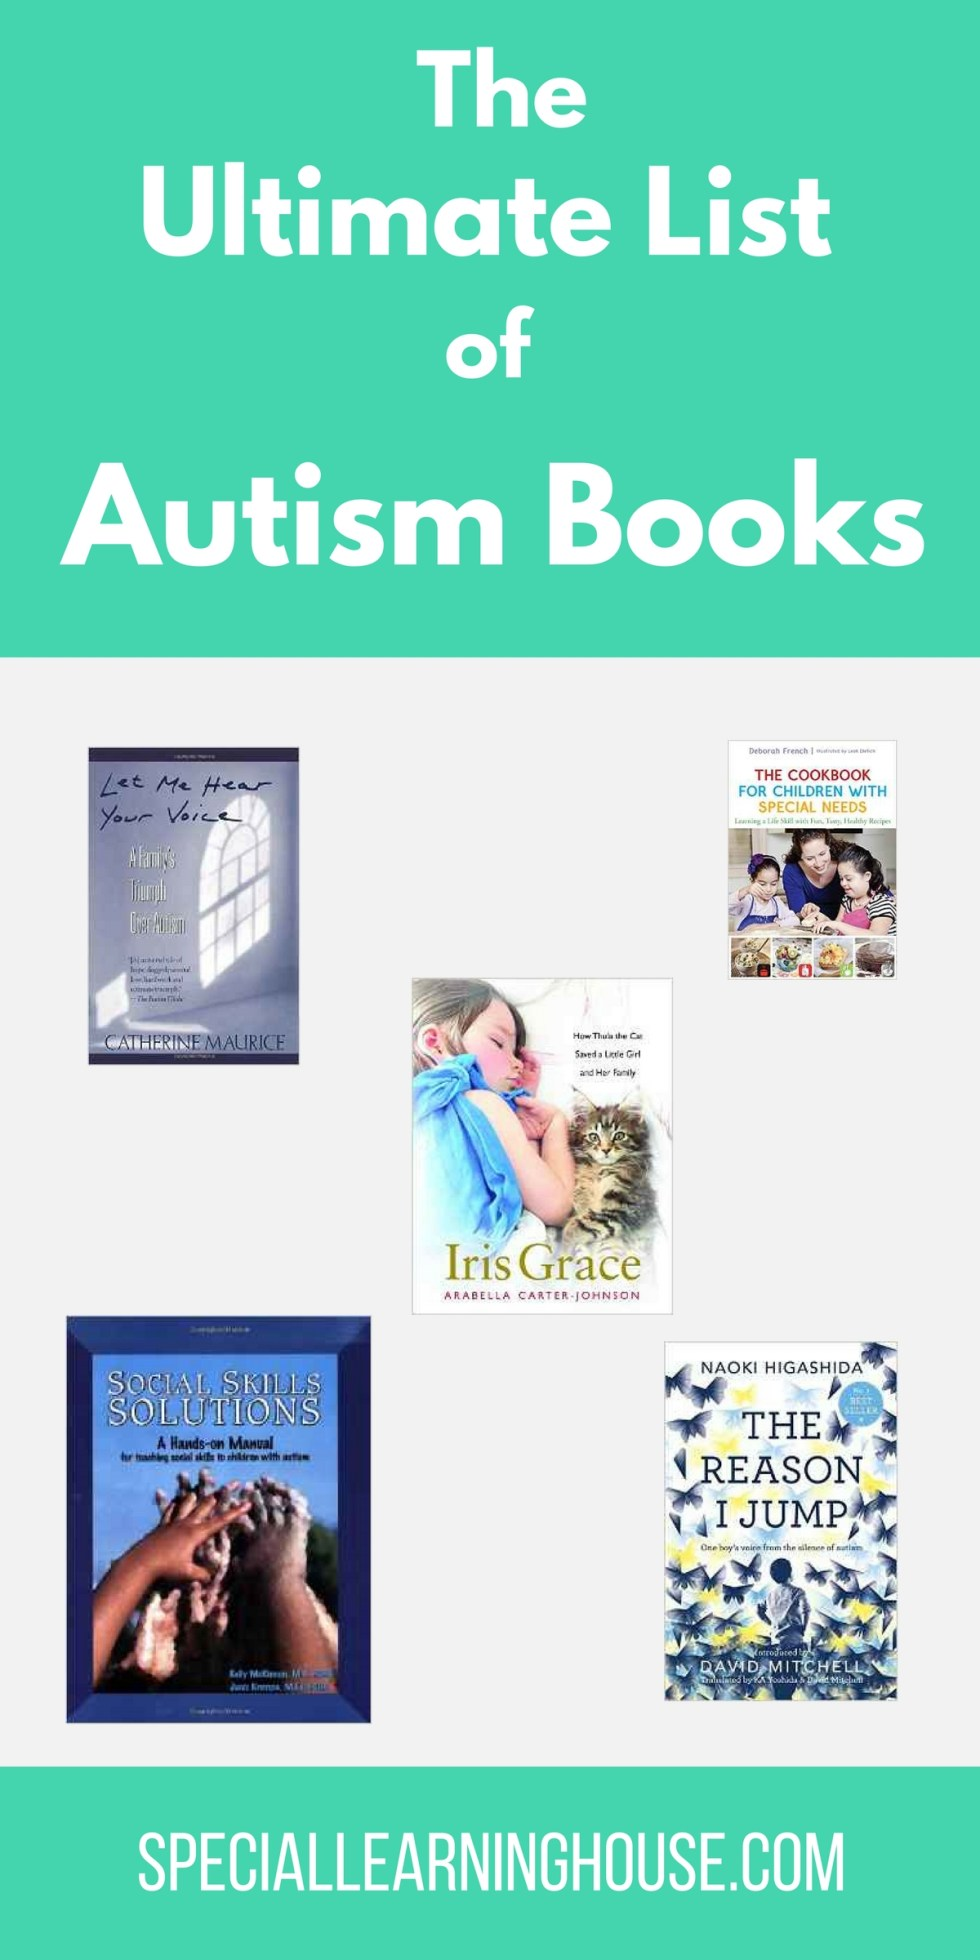 The Ultimate List of Autism Books. | speciallearninghouse.com